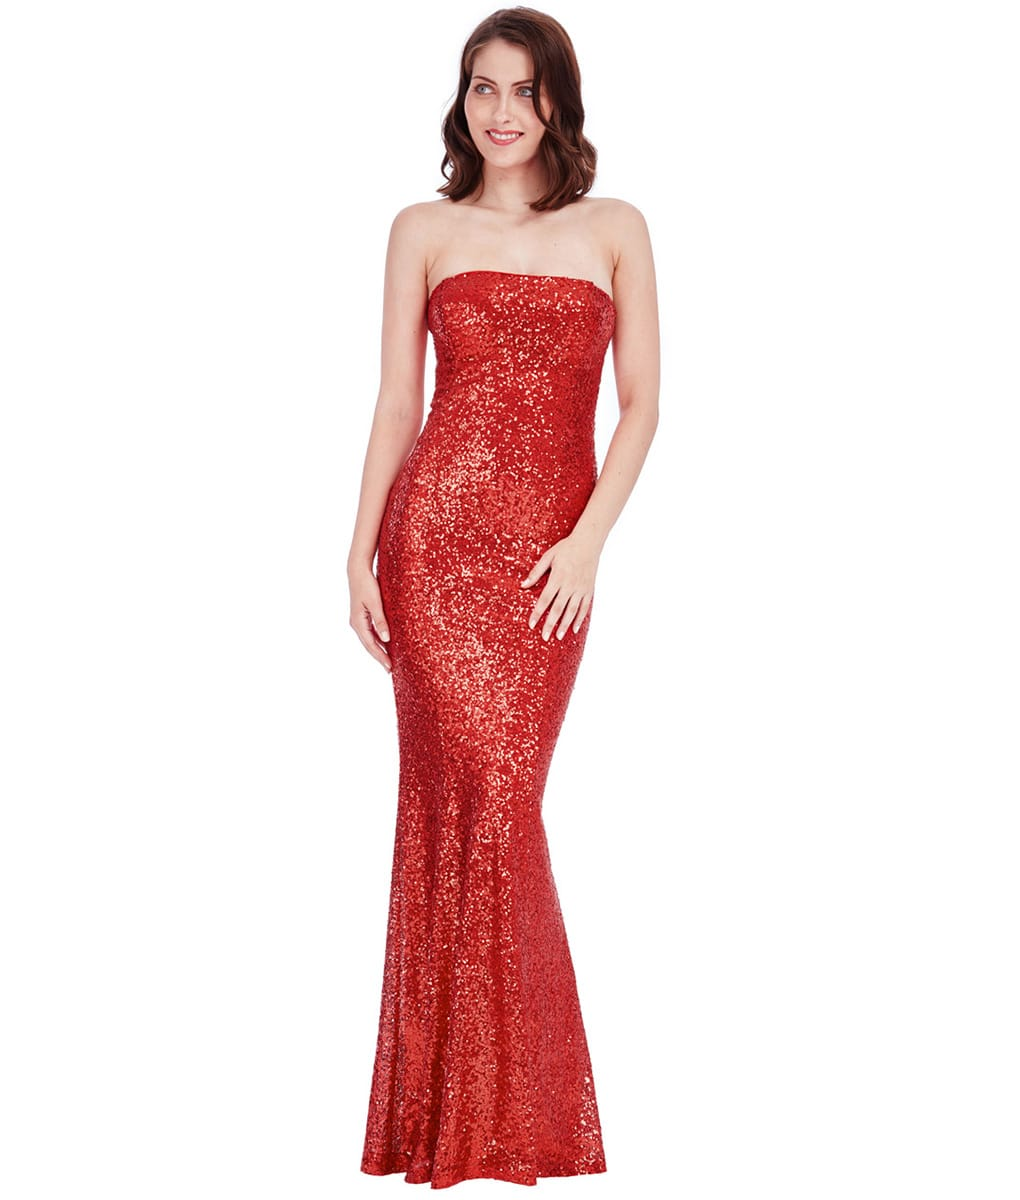 Alila-Red-Sequin-Strapless-debs-dress-City-Goddess